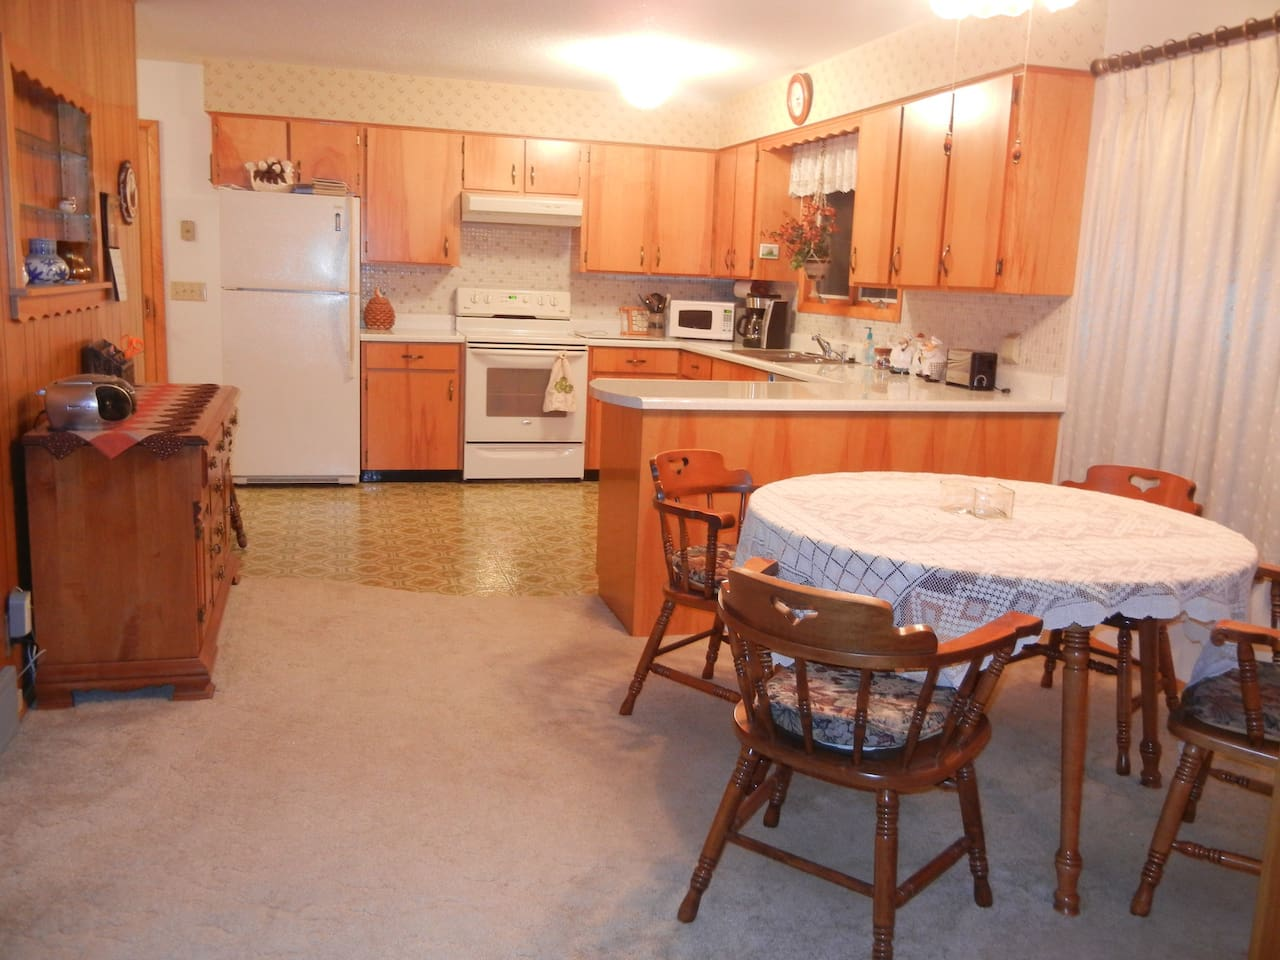 Kitchen and dining areas of the property open to the living room allowing for great visiting opportunities as meals are prepared and served.